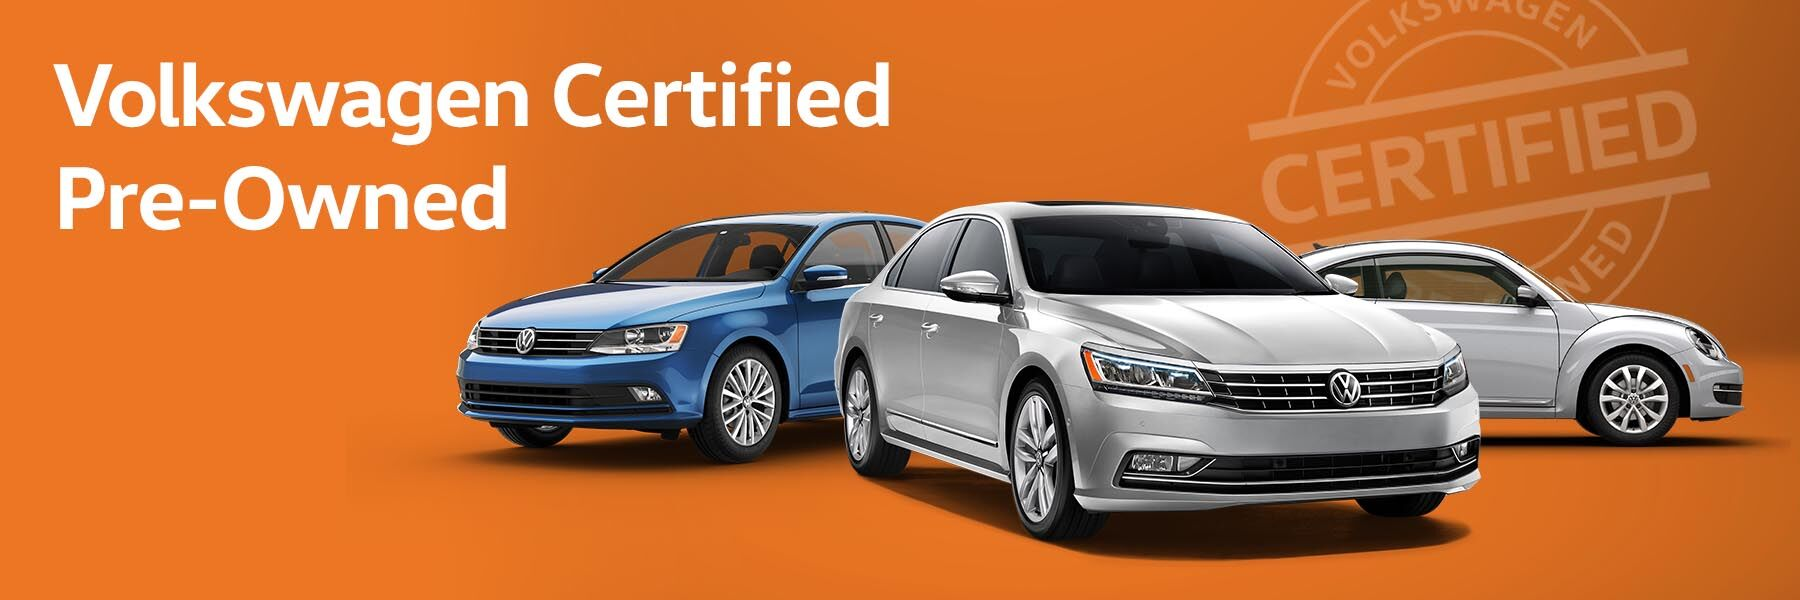 Volkswagen Certified Pre-Owned in Torrance, CA